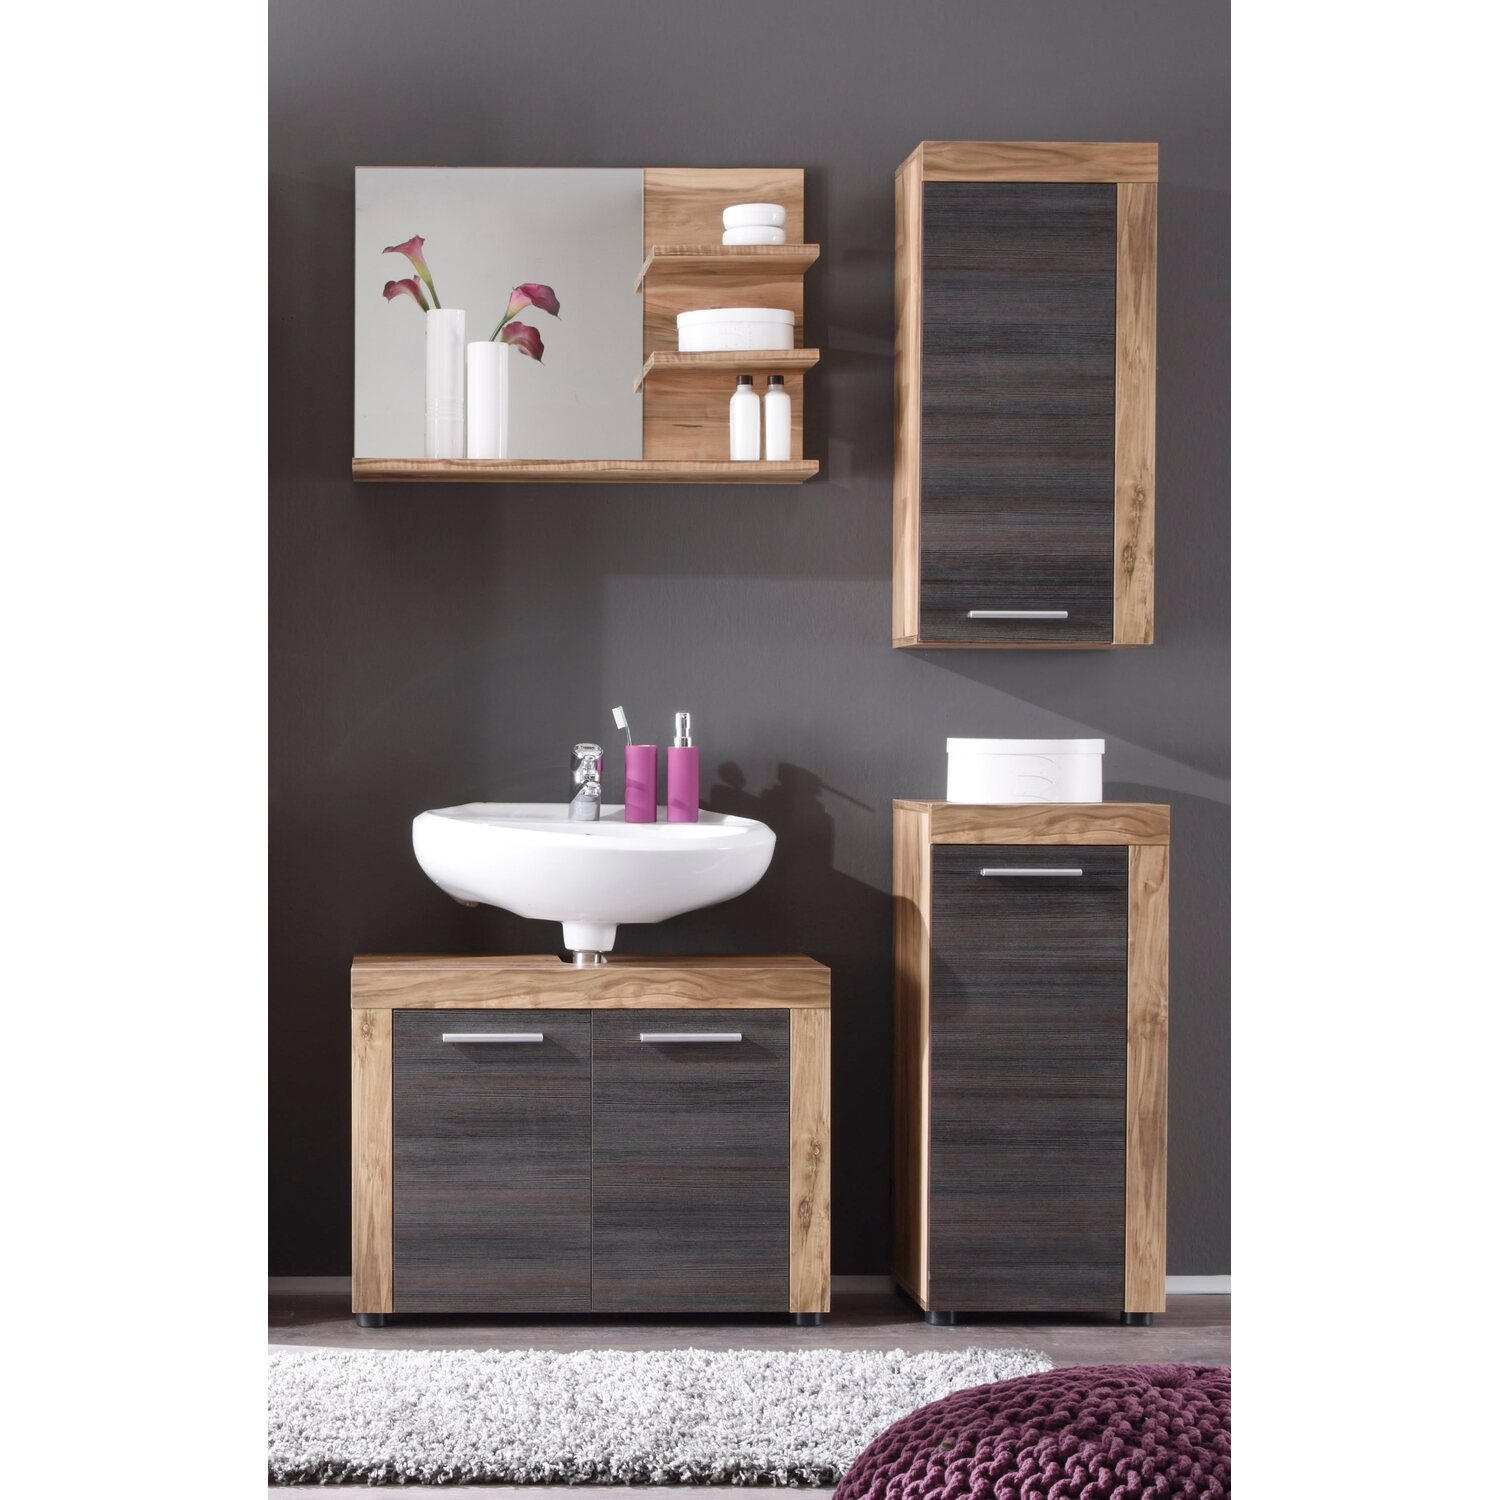 h ngeschrank cancun boom dunkelbraun nussbaum nachbildung kaufen bei obi. Black Bedroom Furniture Sets. Home Design Ideas